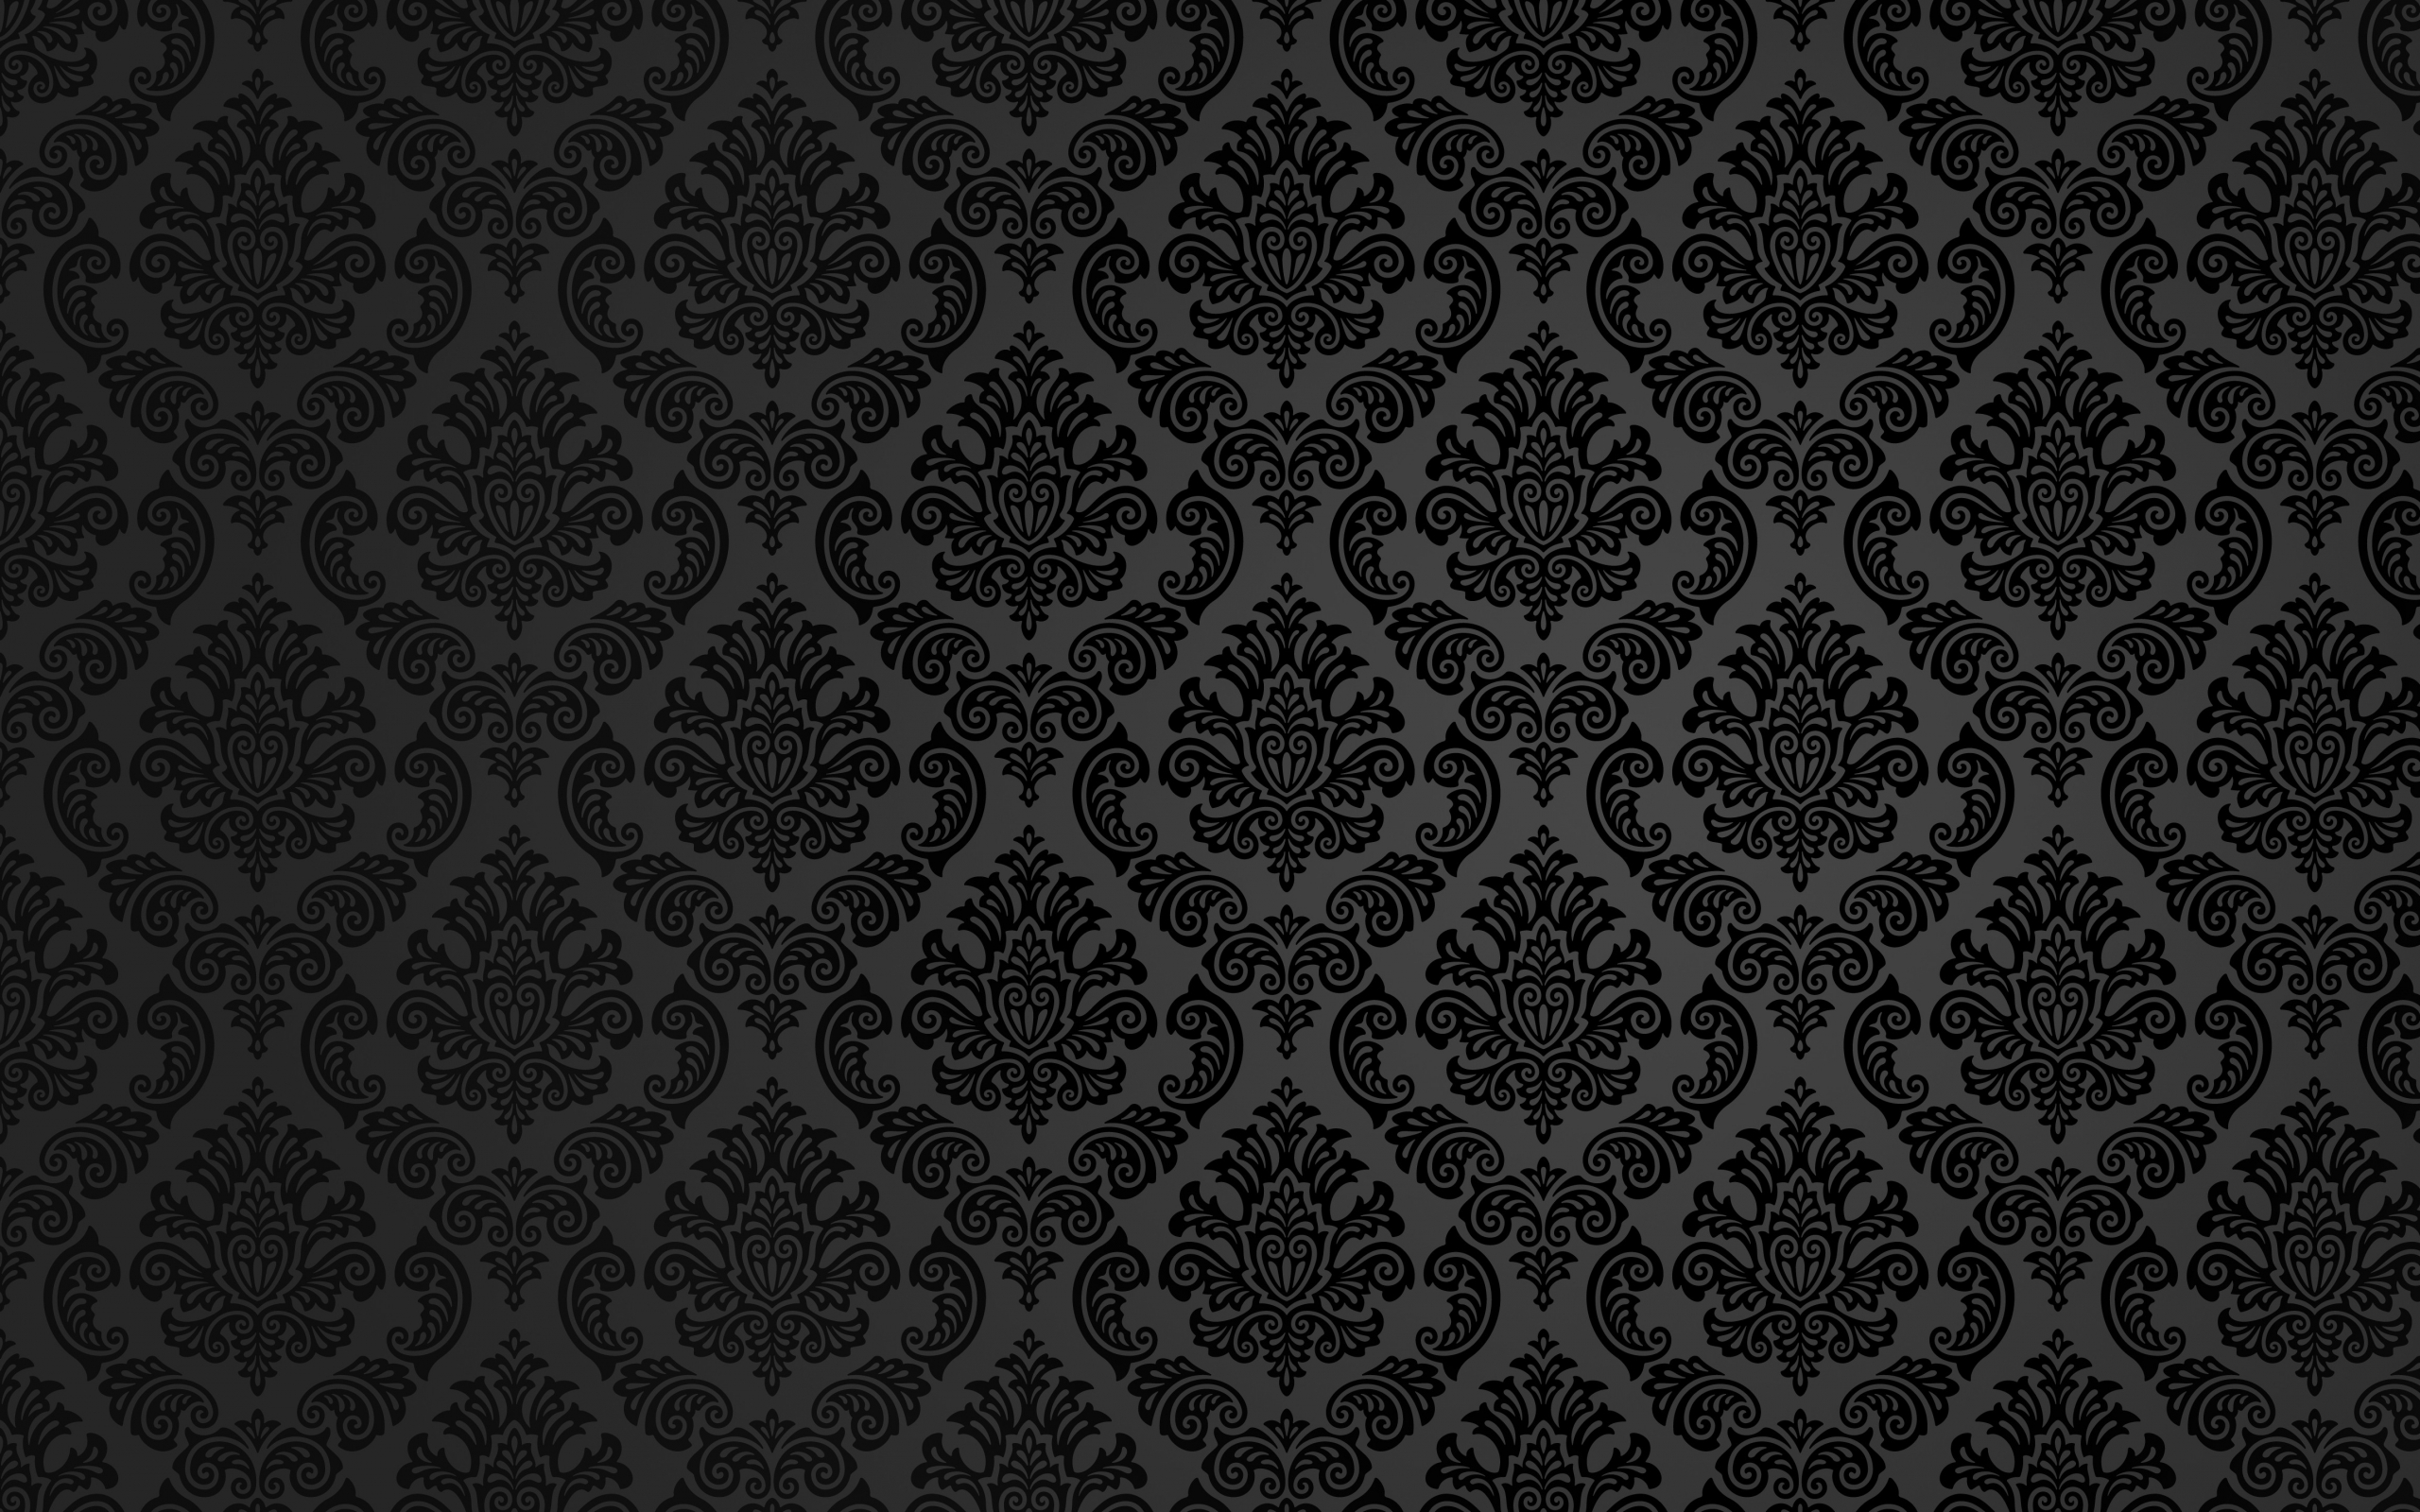 damask patterns wallpapers wallpaper 2560x1600 2560x1600